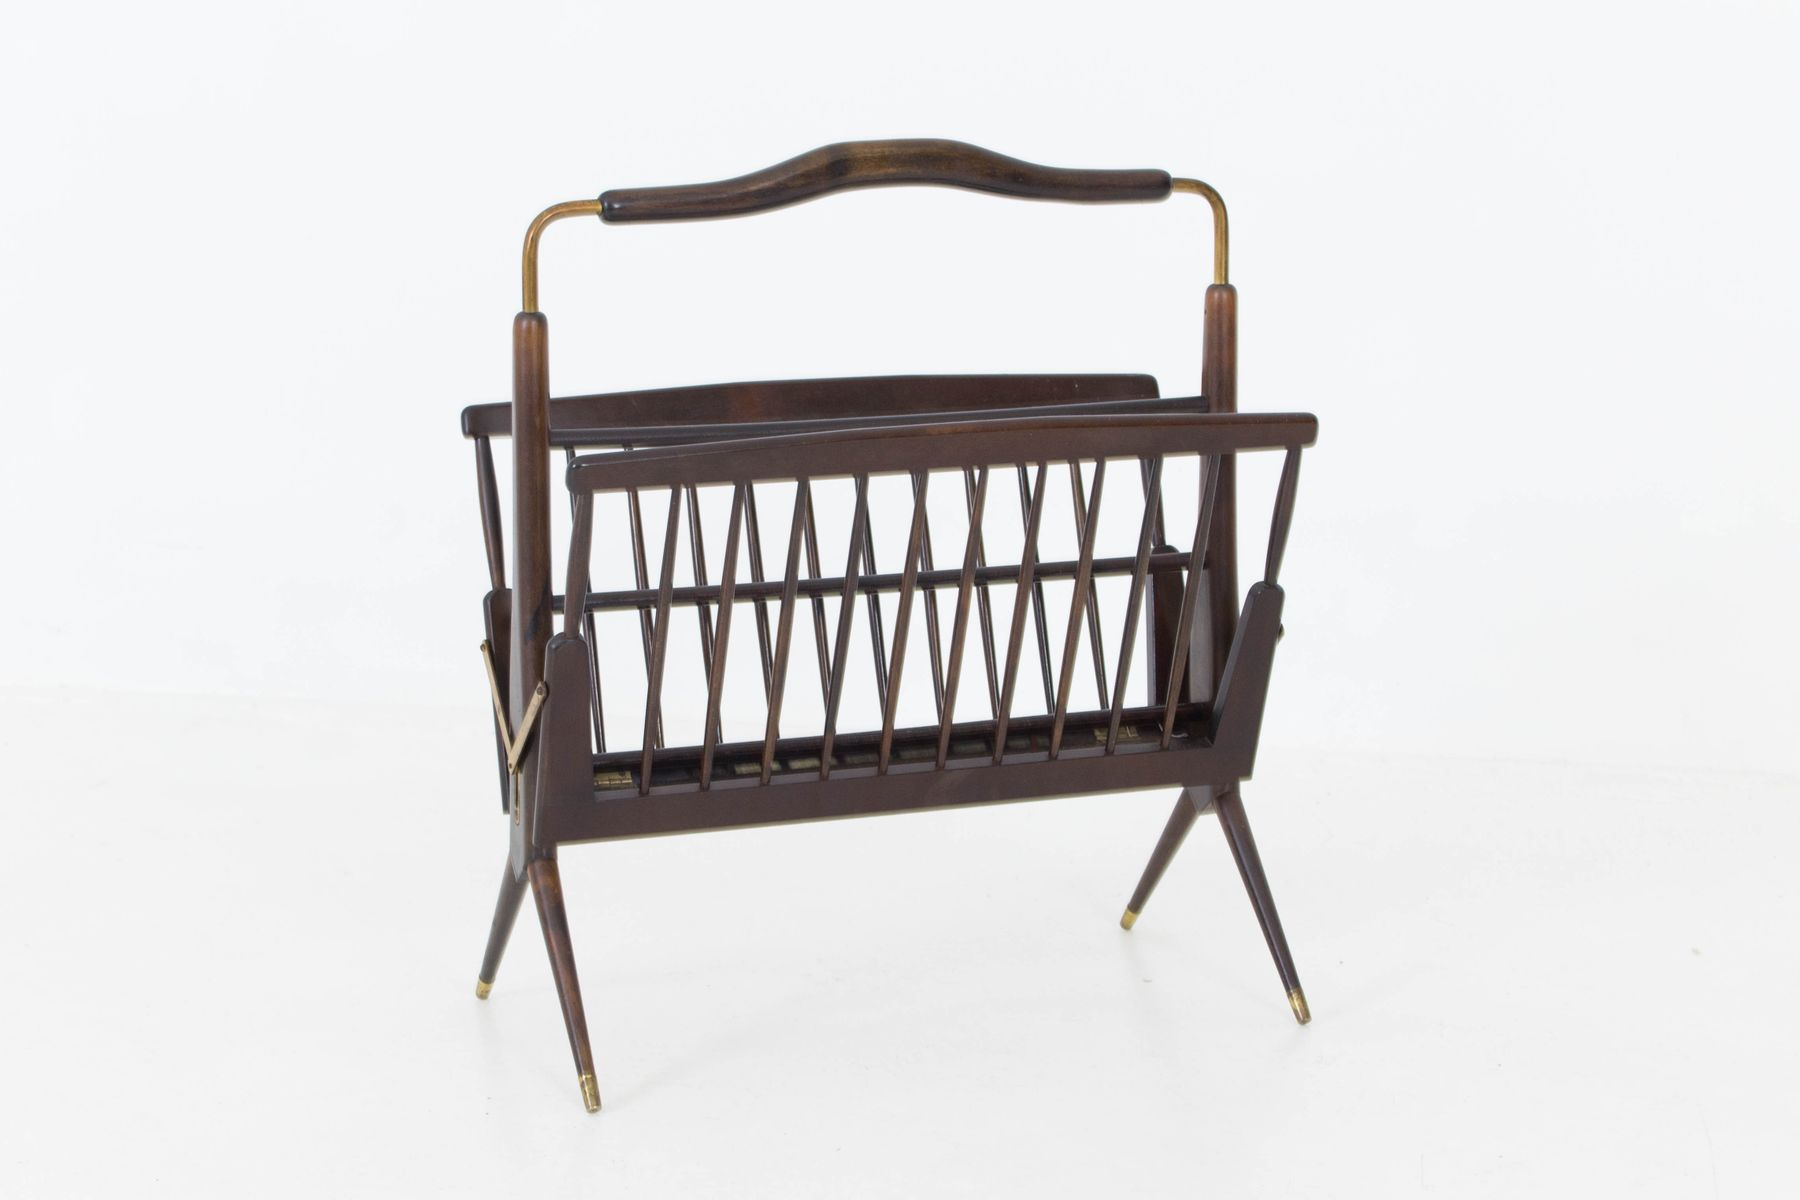 Italian Mid Century Modern Walnut Magazine Rack 1950s for sale at